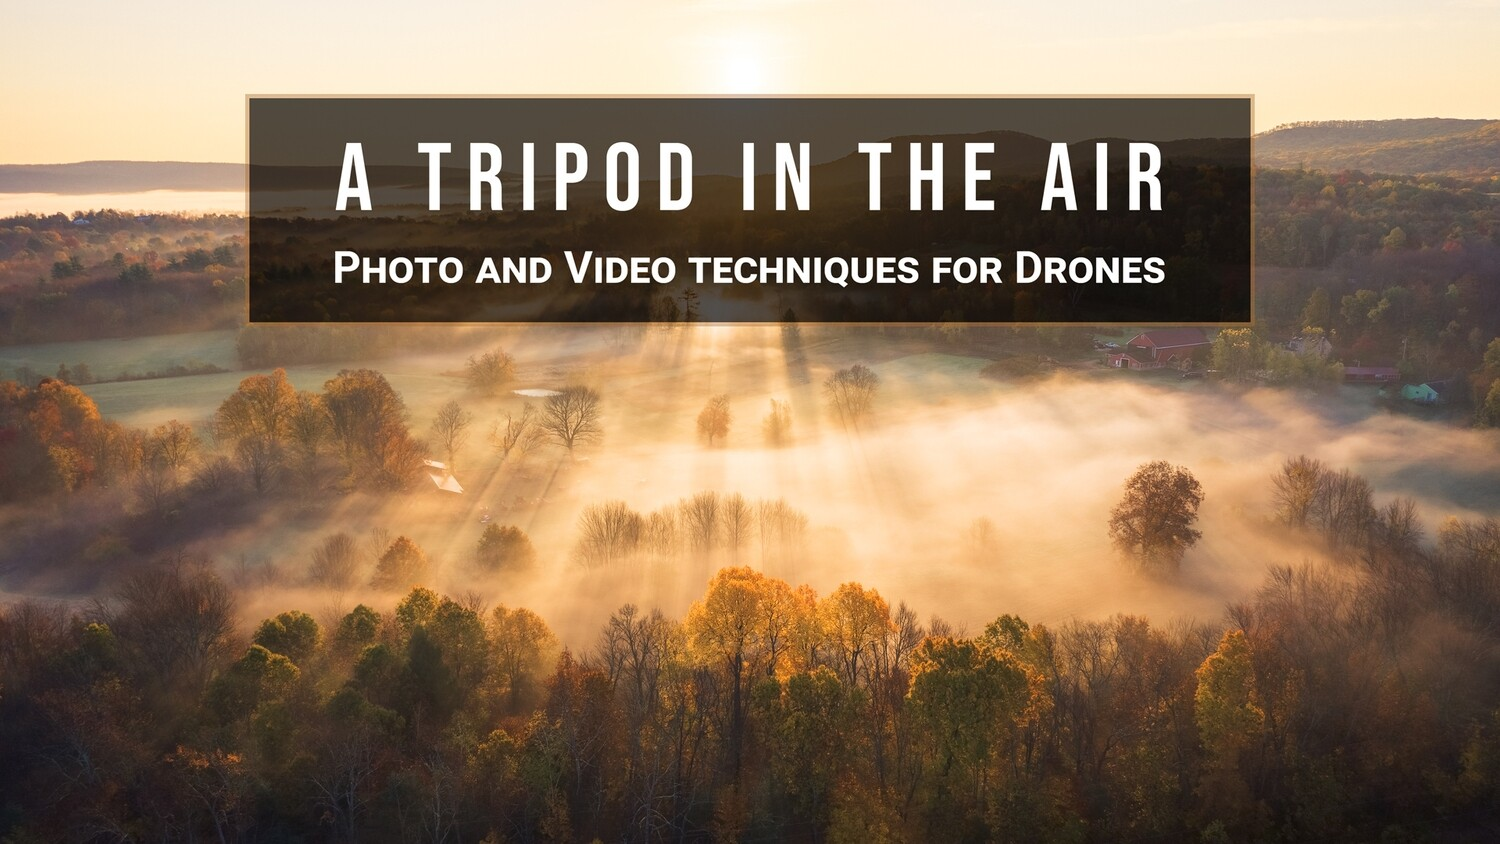 Special Guest Series- A Tripod in the Air- Photo & Video Techniques for Drones with Jamie Malcolm-Brown